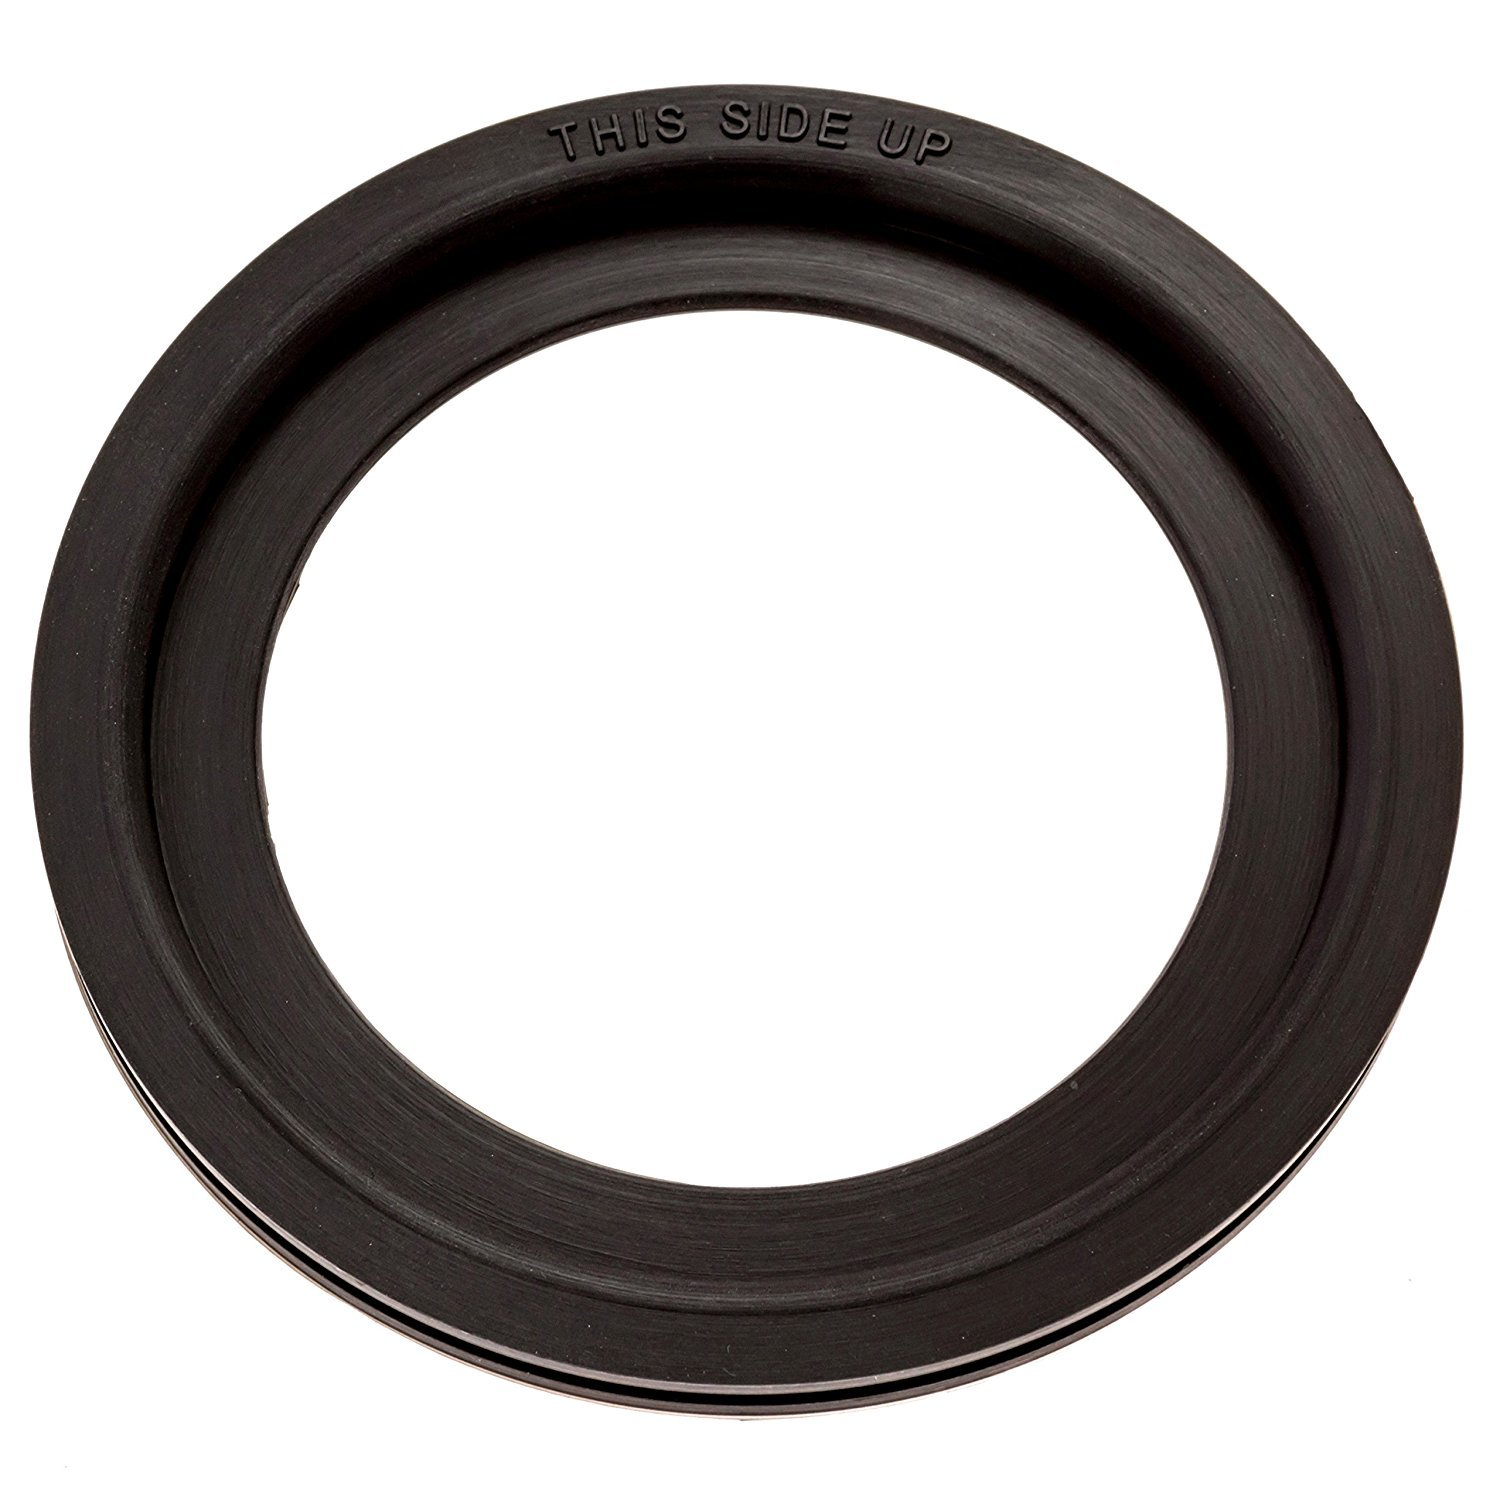 Dometic-Compatible Flush Ball Seal for 300/310/320 RV Toilets - Comparable to Part Number 385311658 - by Mission Automotive